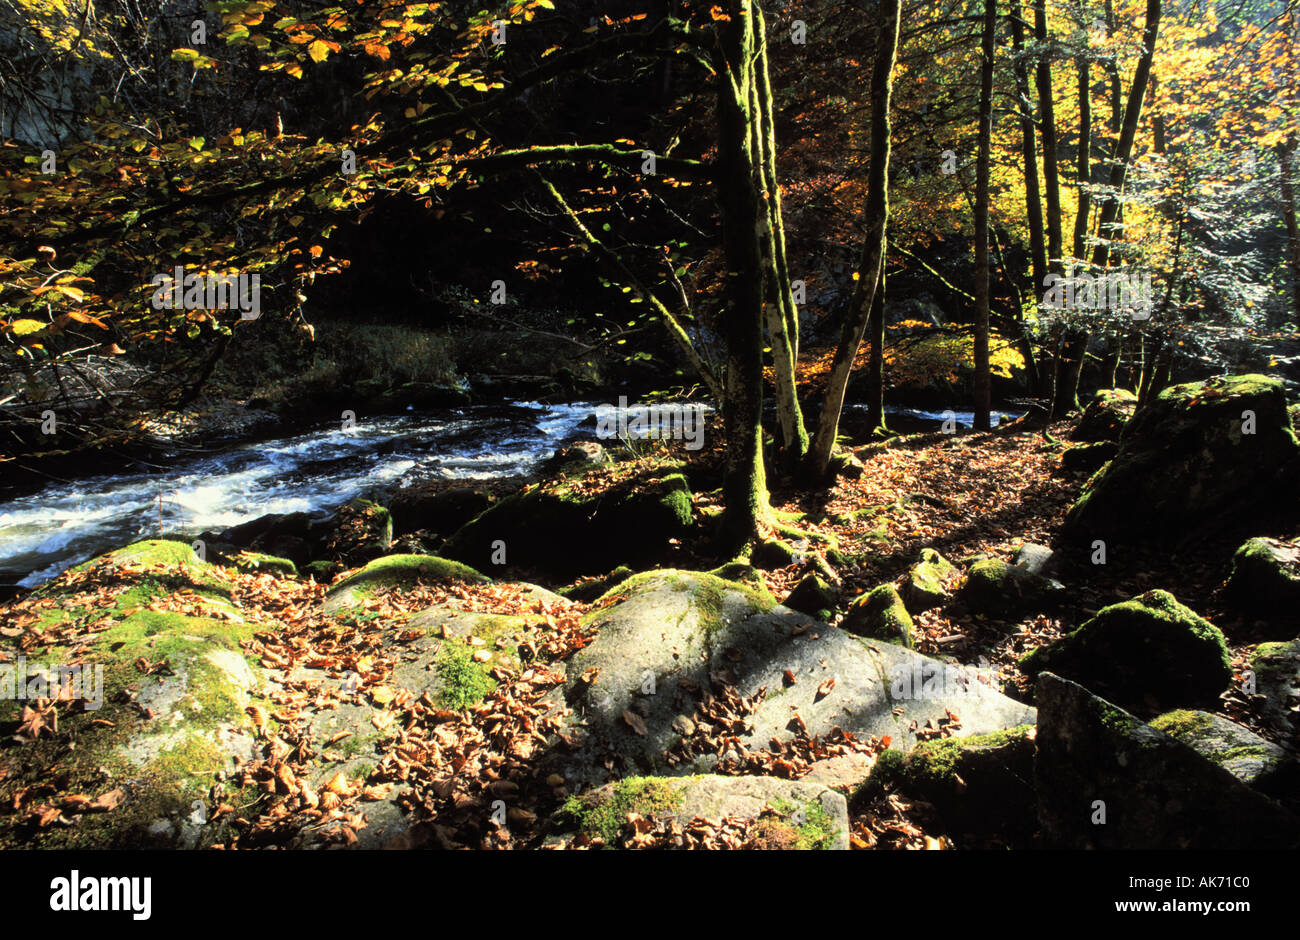 Wutachschlucht at the Black Forest rocks trees autumn leaves Baden Wuerttemberg Germany - Stock Image